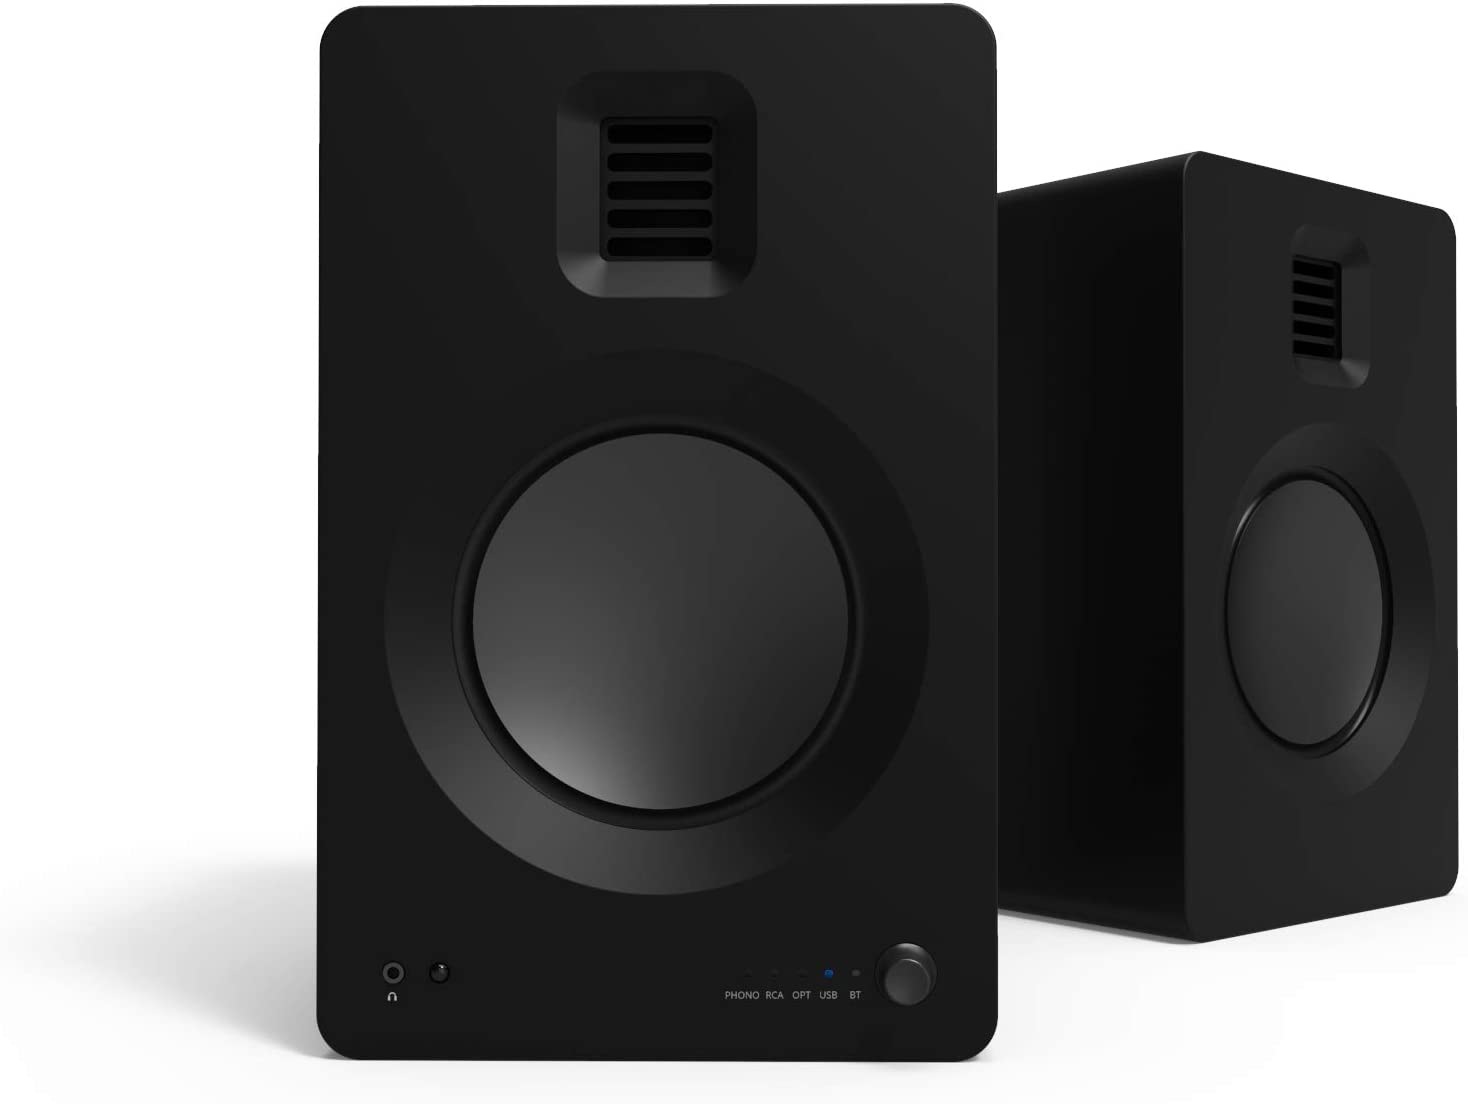 Kanto TUK Powered Speakers-Top rated and best external speaker for TV